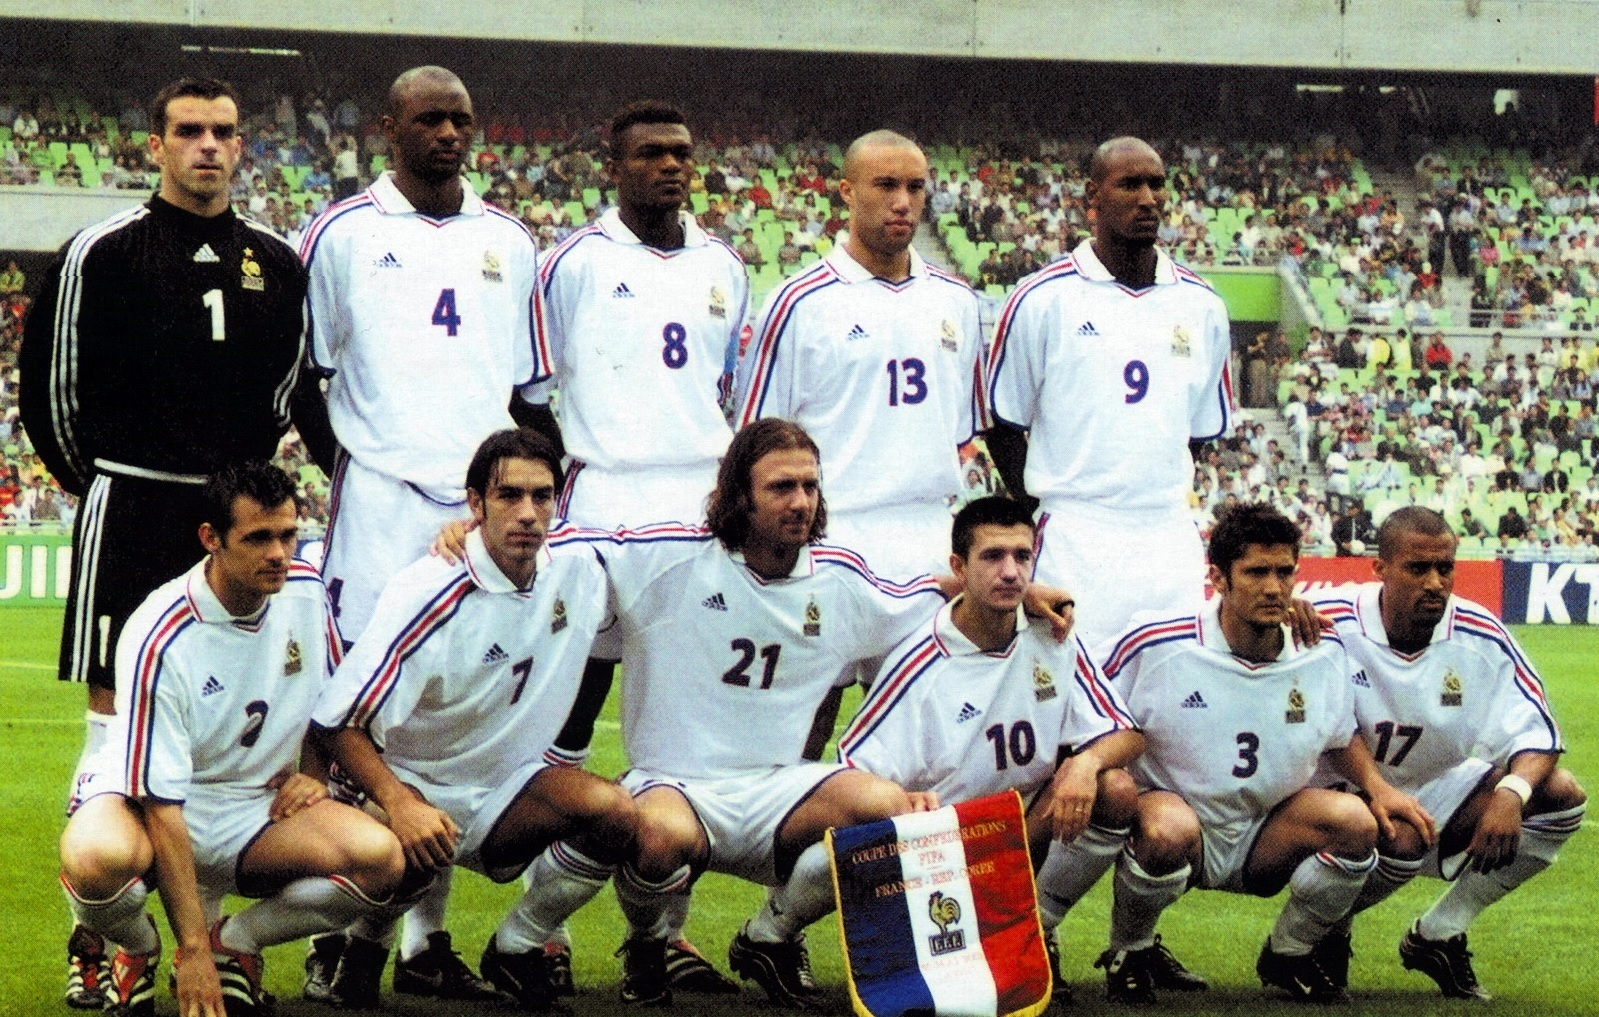 France-2001-adidas-confederations-cup-away-kit-white-white-white-line-up.jpg